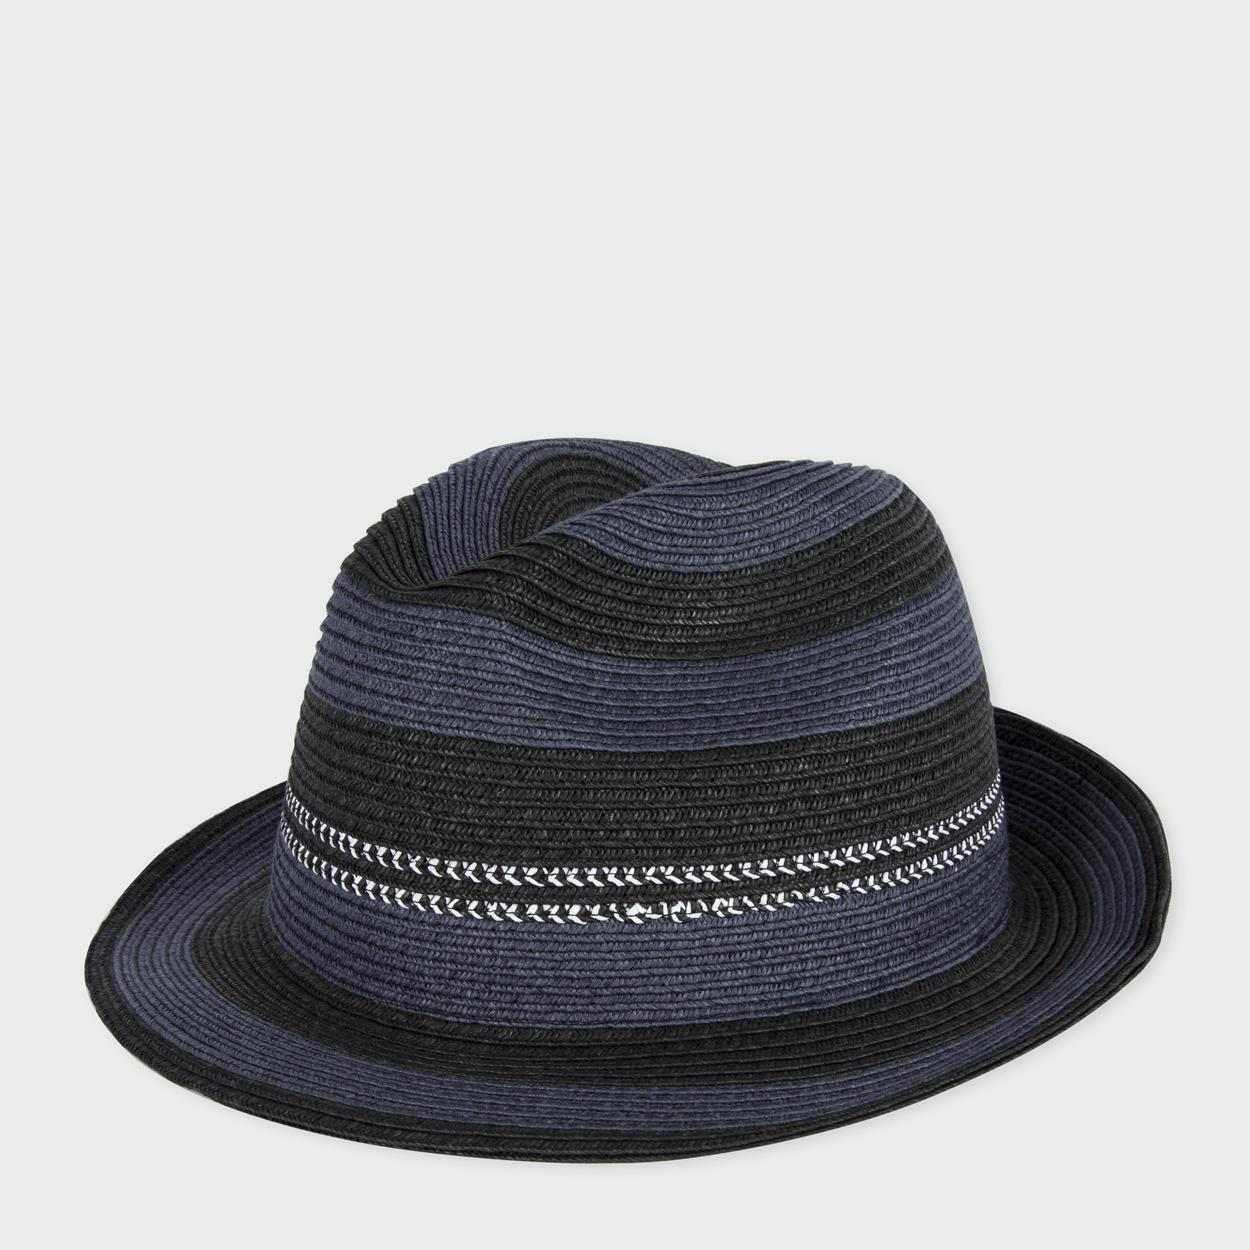 You searched for: mens trilby hat! Etsy is the home to thousands of handmade, vintage, and one-of-a-kind products and gifts related to your search. No matter what you're looking for or where you are in the world, our global marketplace of sellers can help you find unique and affordable options. Let's get started!